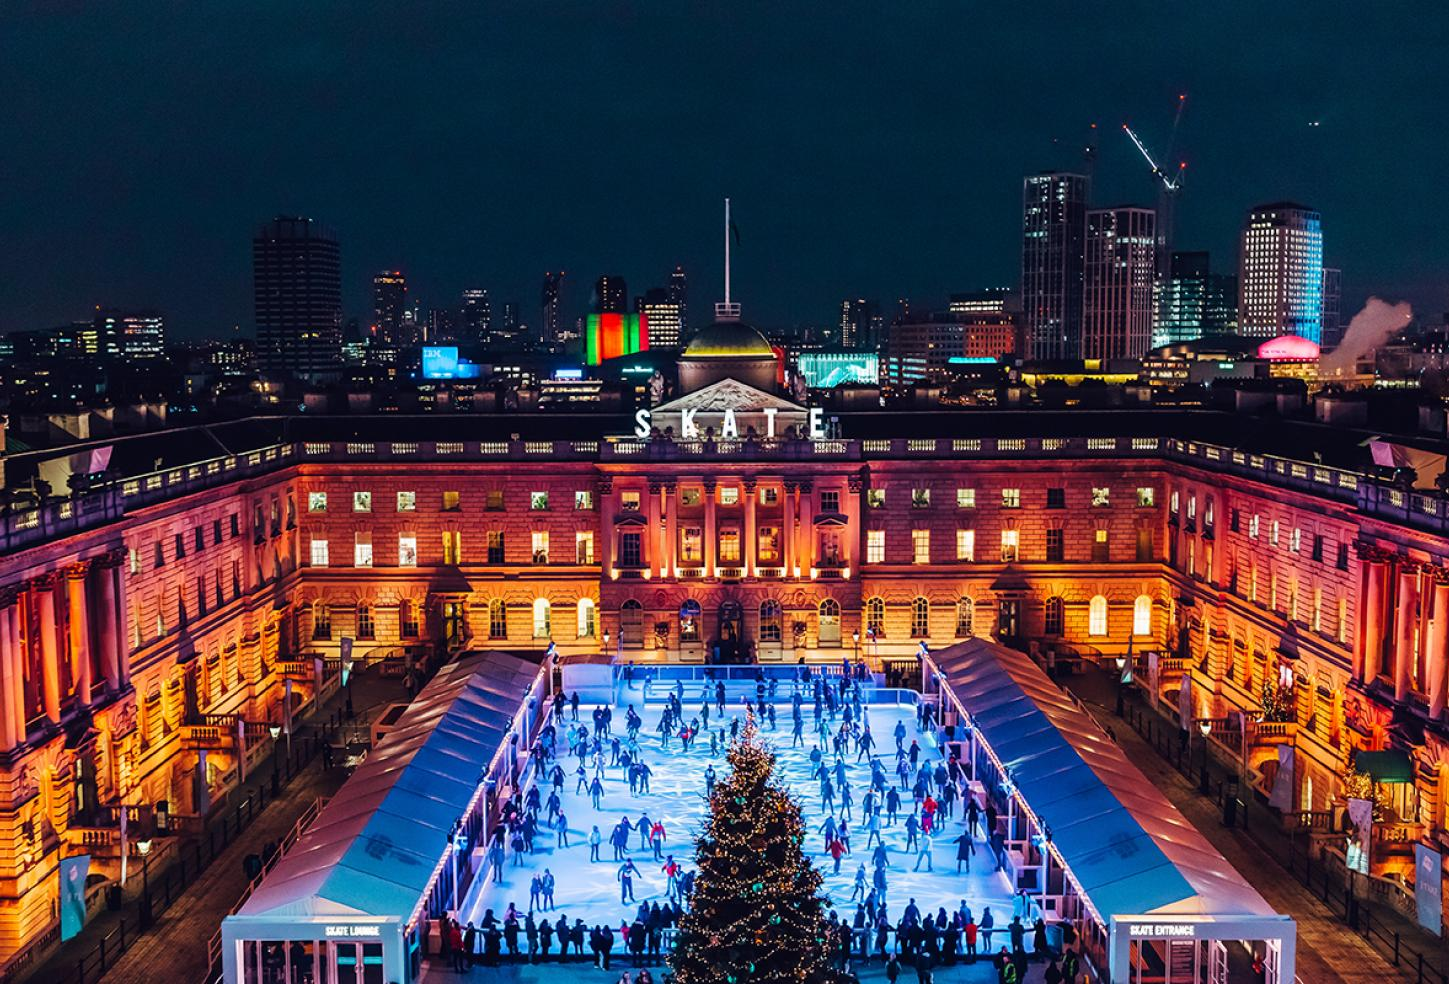 Skate at Somerset House | Somerset House